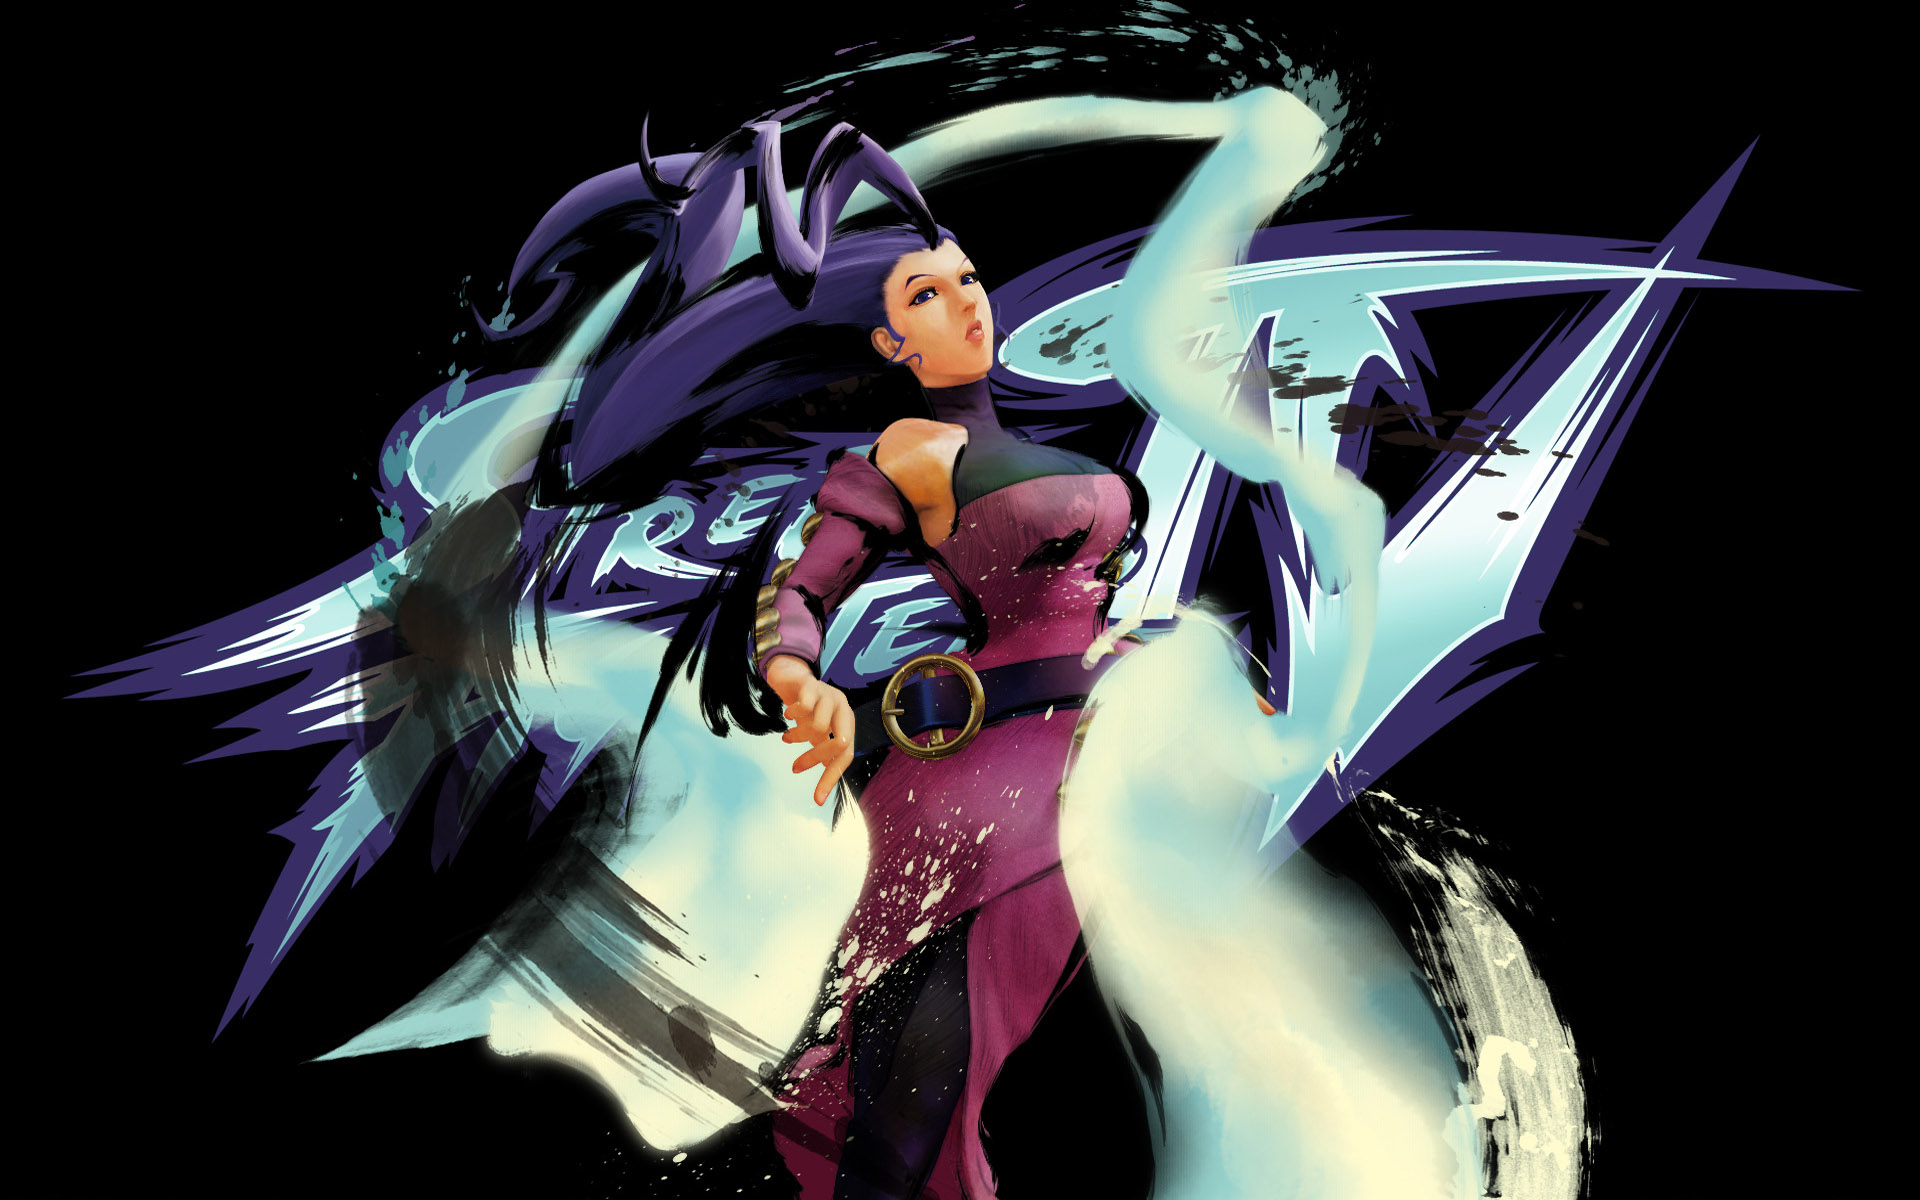 Street Fighter Wallpapers, Pictures, Images